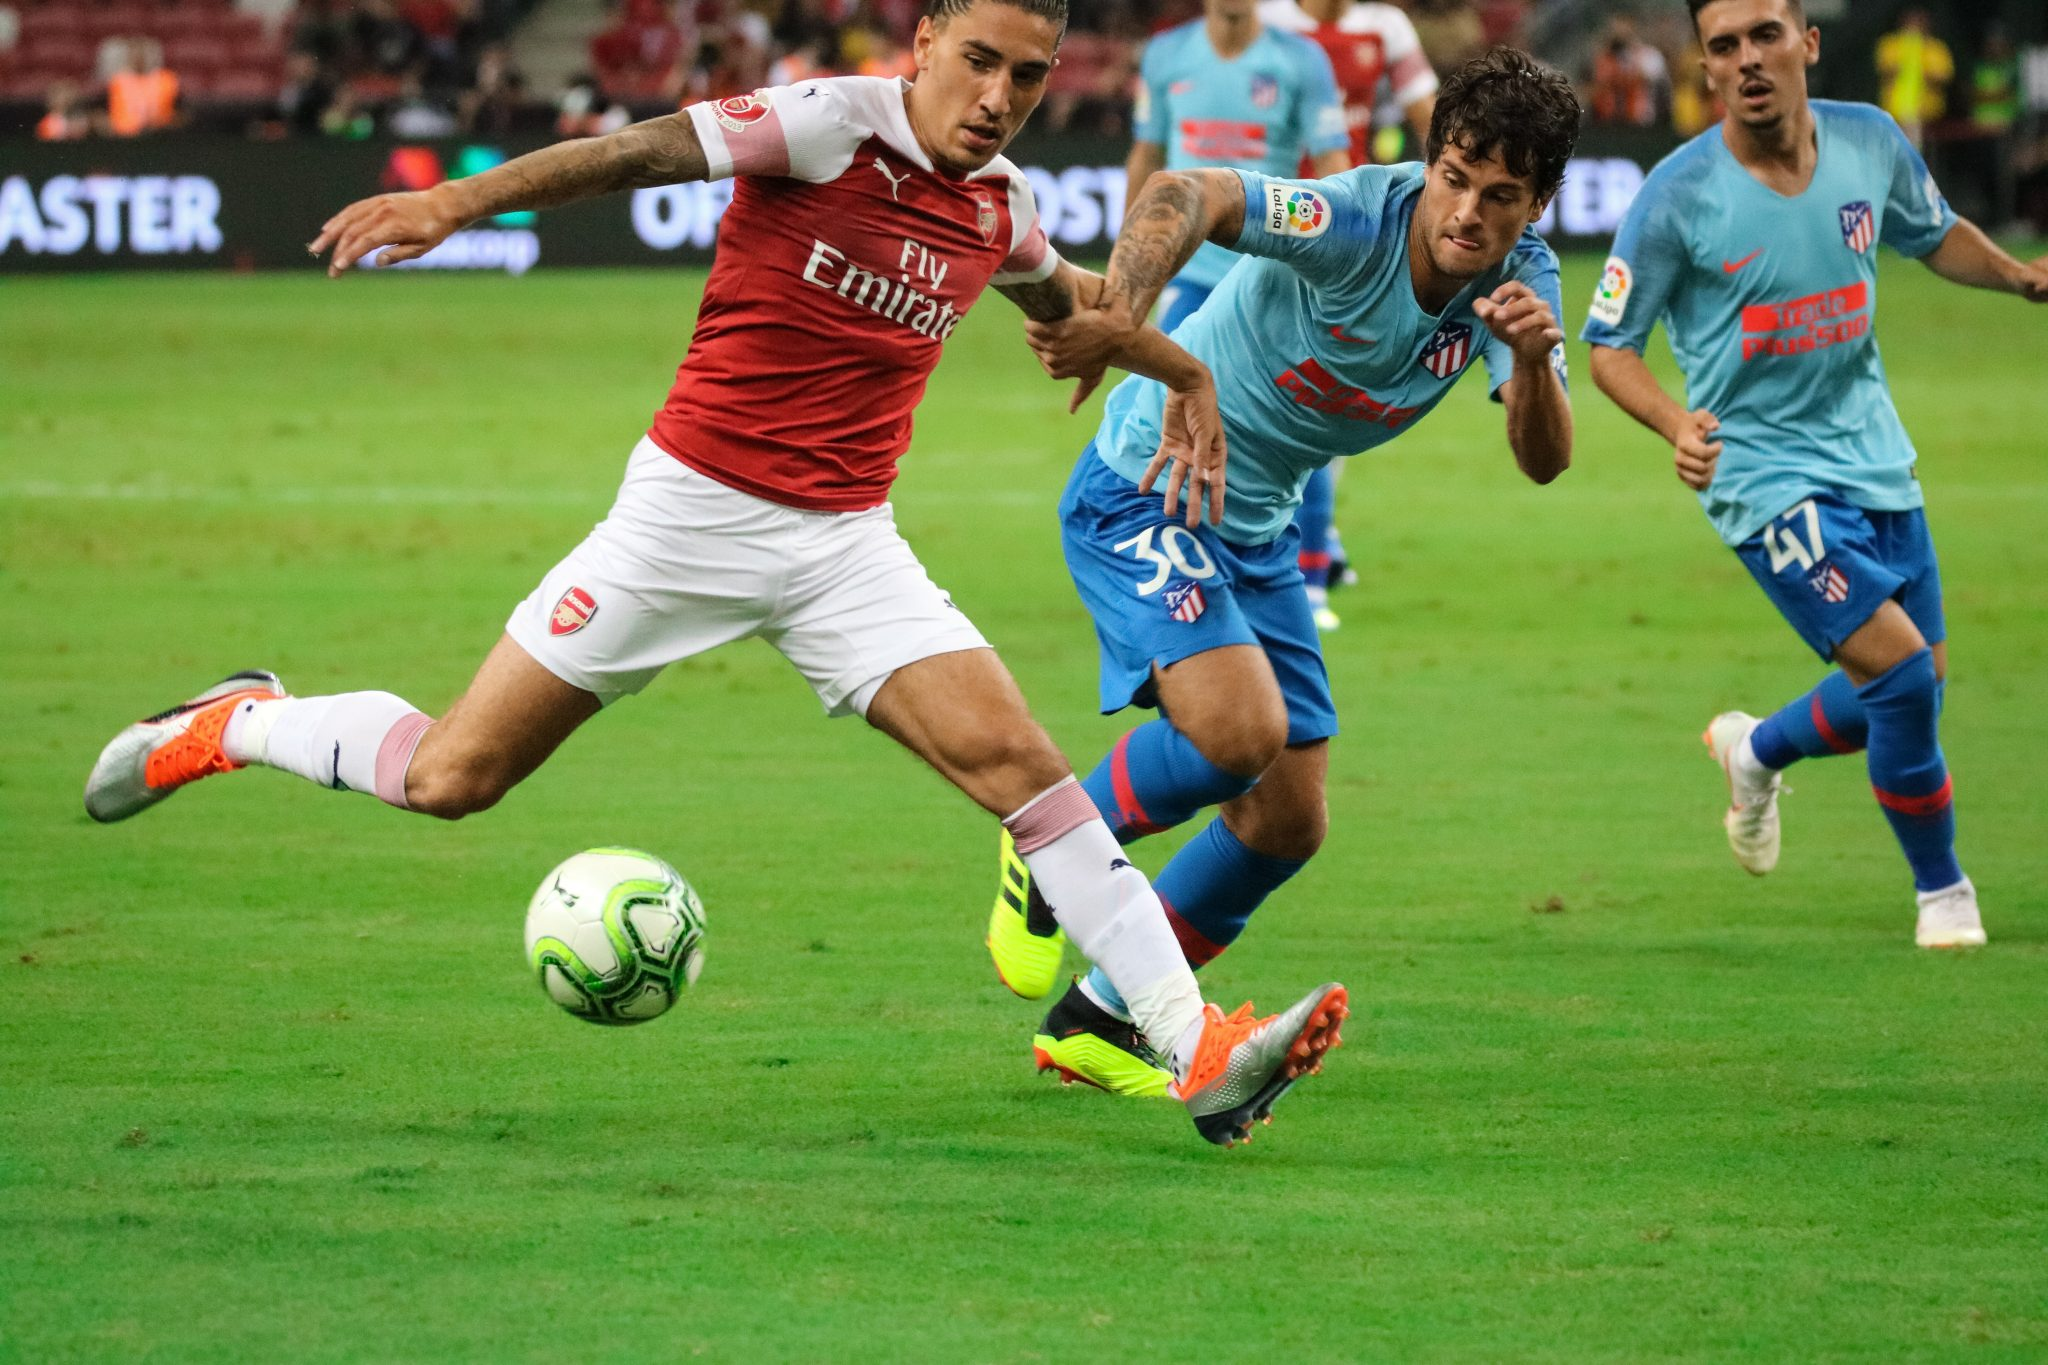 ICC Singapore Opening Match: Arsenal Chances